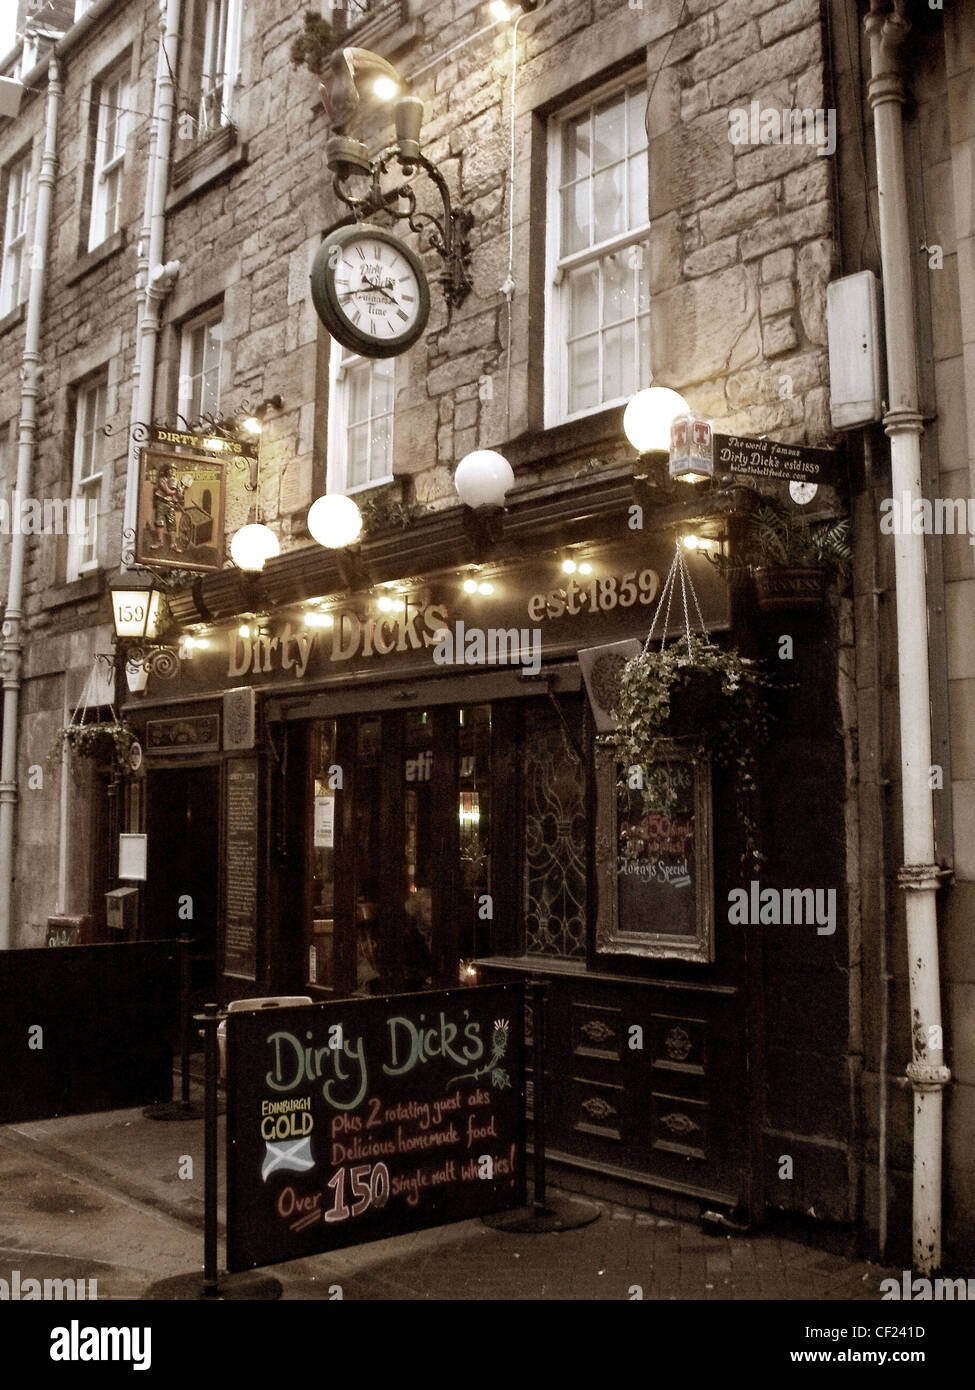 Dirty Dicks pub,Rose,Street,Edinburgh,new,town,Scotland,in,the,Evening,dusk,lights,on,drinking,place,pub,establishment,gotonysmith,sepia,old,world,classic,whisky,trial,trail,dirt,dick,est,1859,good,places,tourist,places,to,see,dirty,dicks,pub,rose,st,Edinburgh,gotonysmith,Buy Pictures of,Buy Images Of